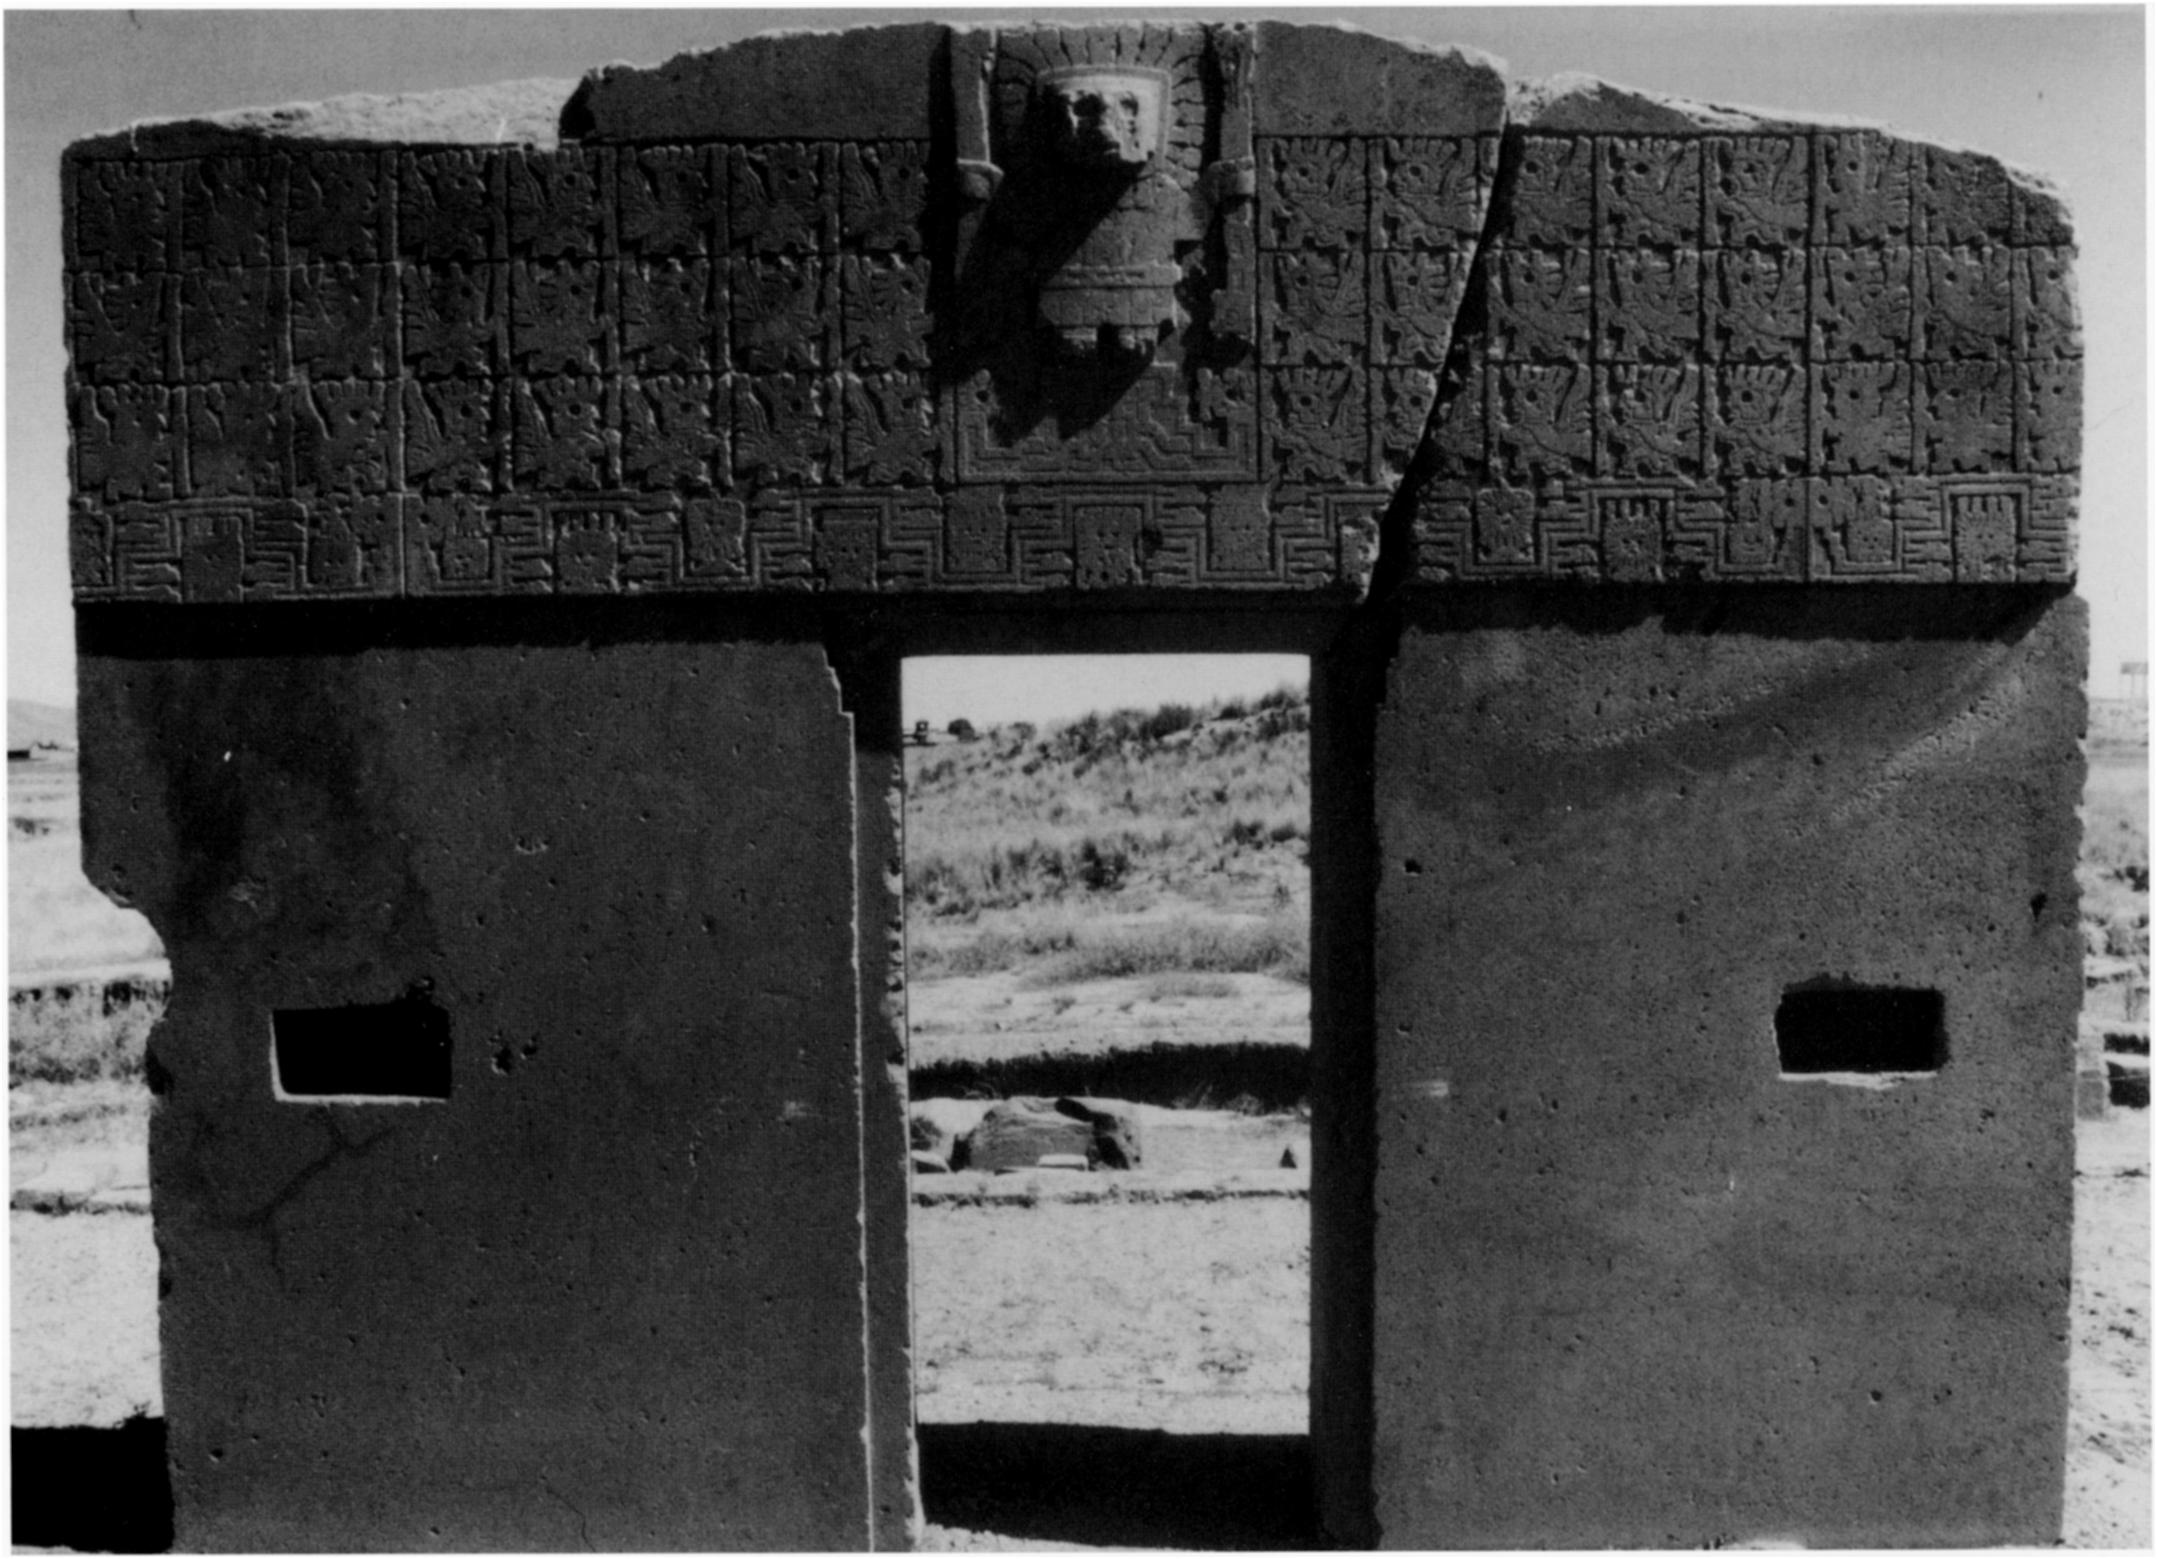 FIGURE 16: Tiahuanaco, Gate of the Sun, front side always appears as a small, recessed simple cross within a larger, recessed simple cross.